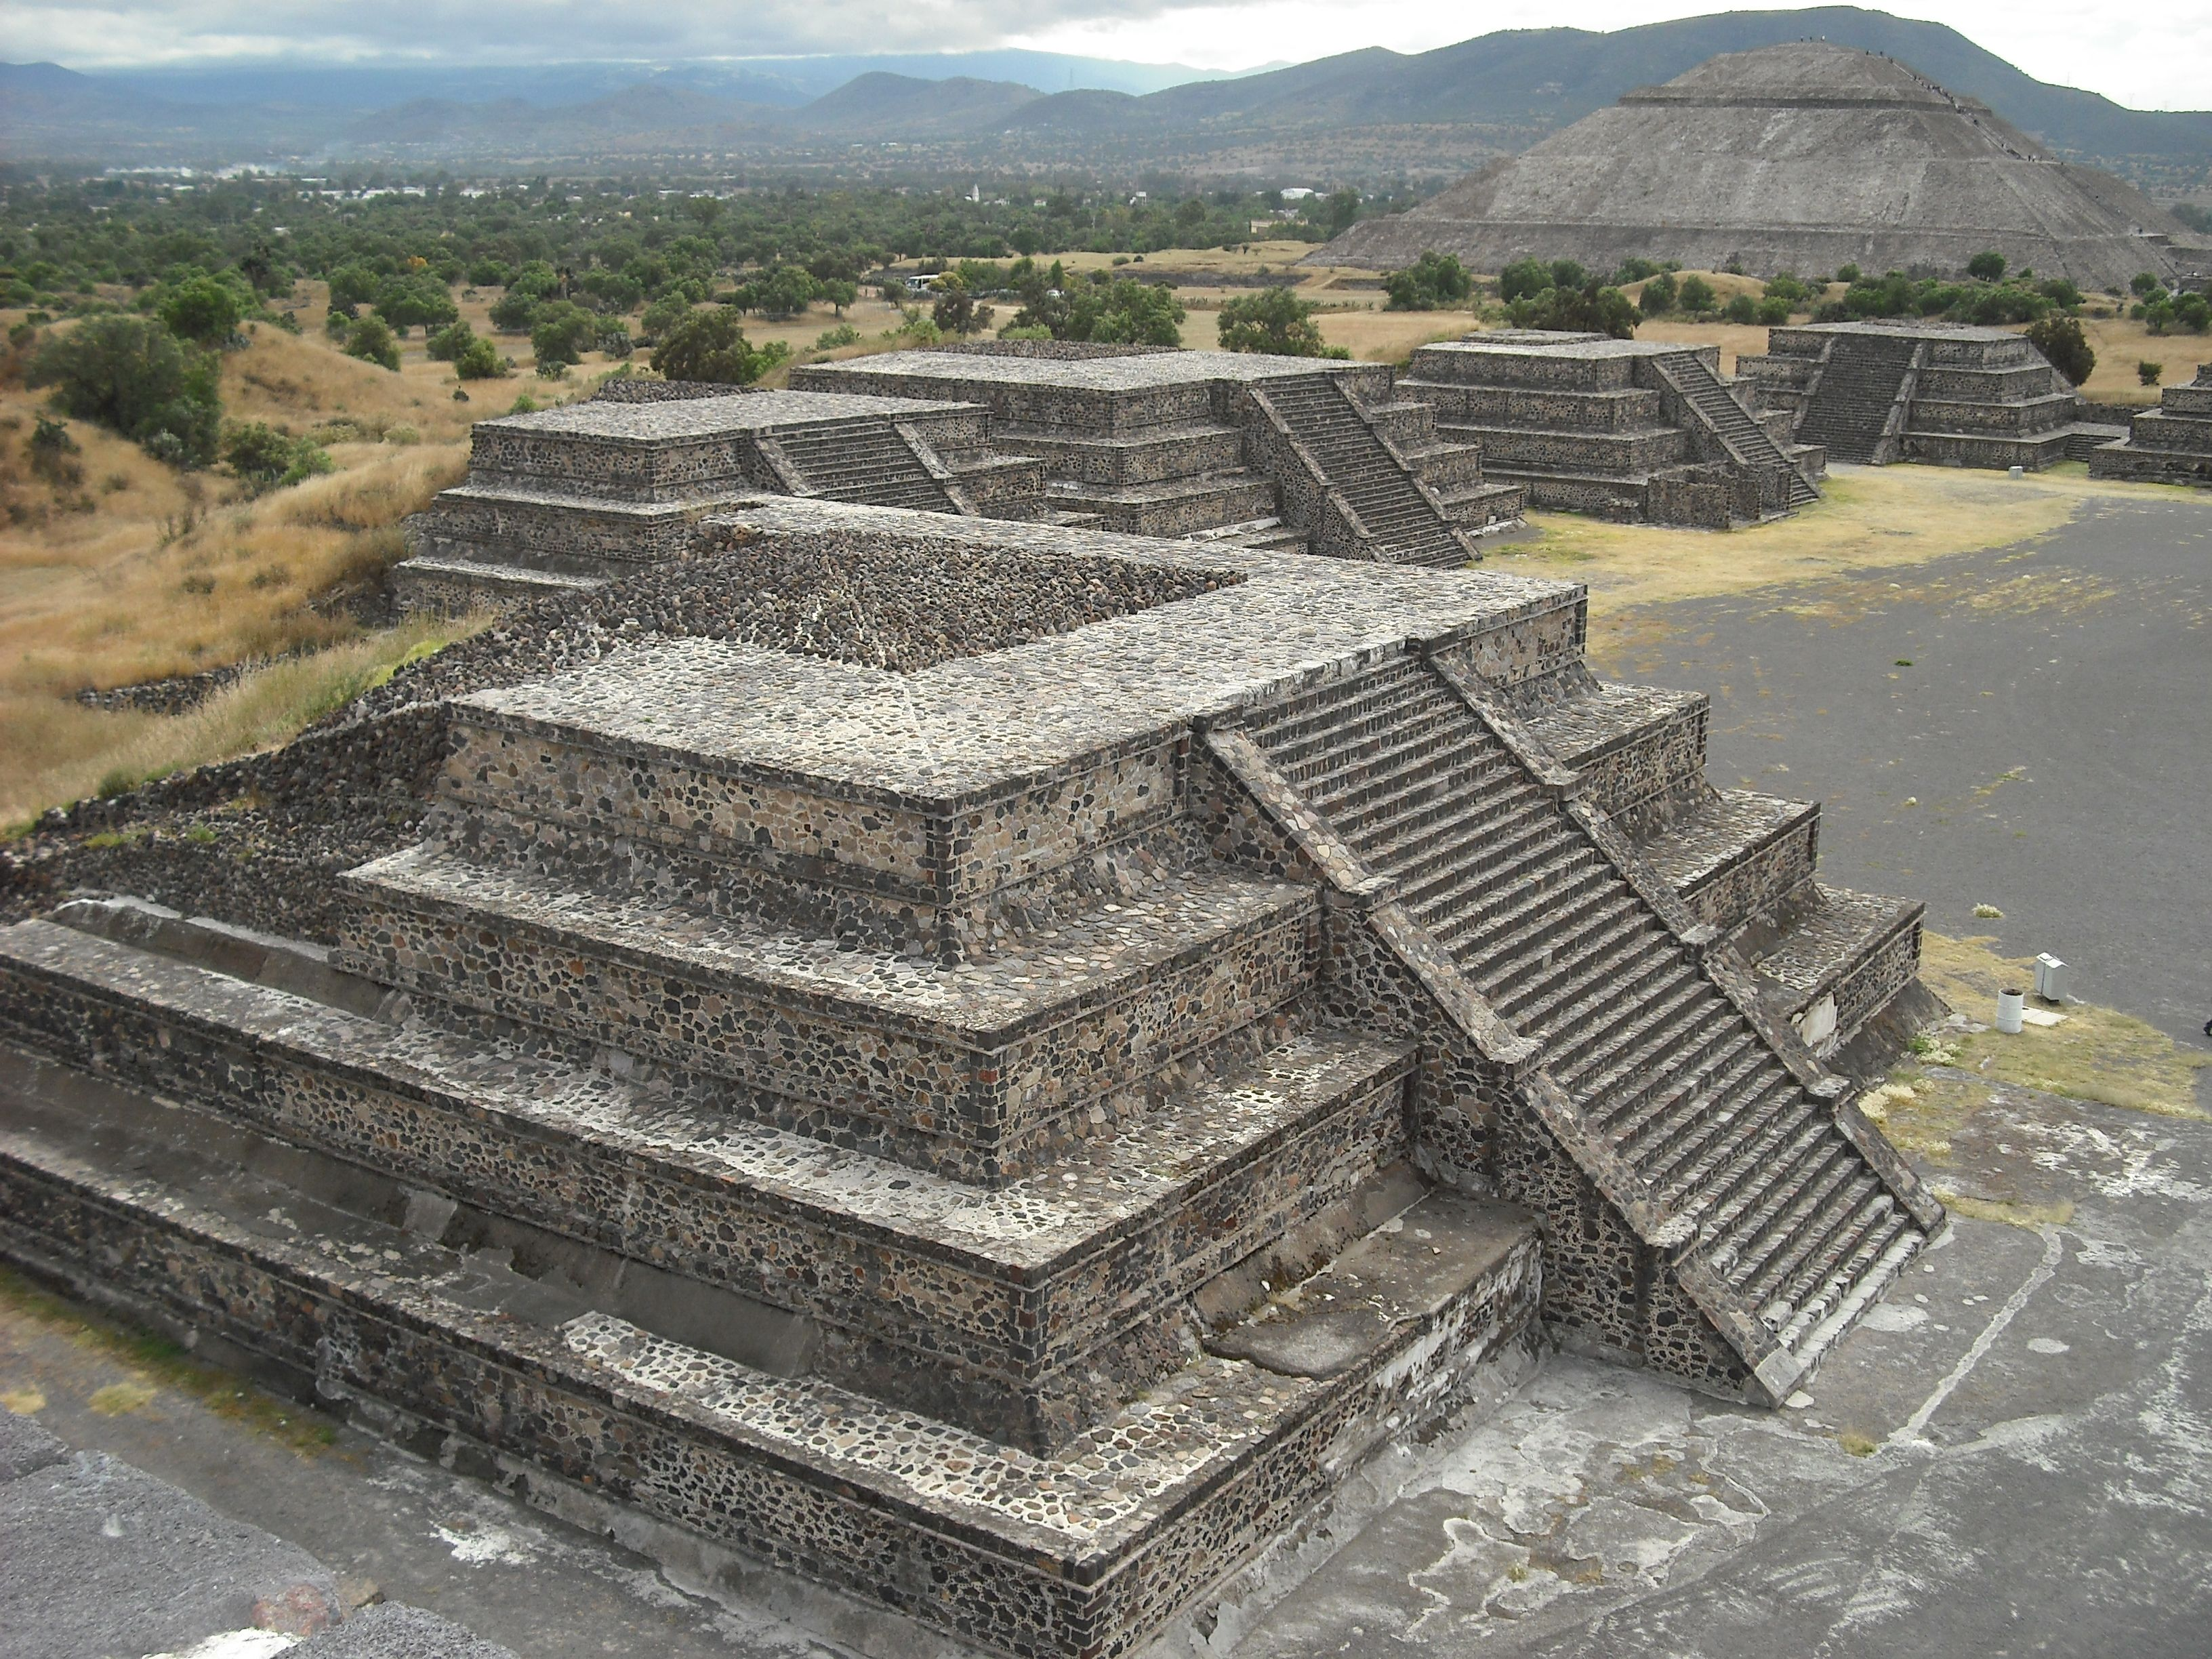 10 major achievements of the ancient aztec civilization - HD 3264×2448